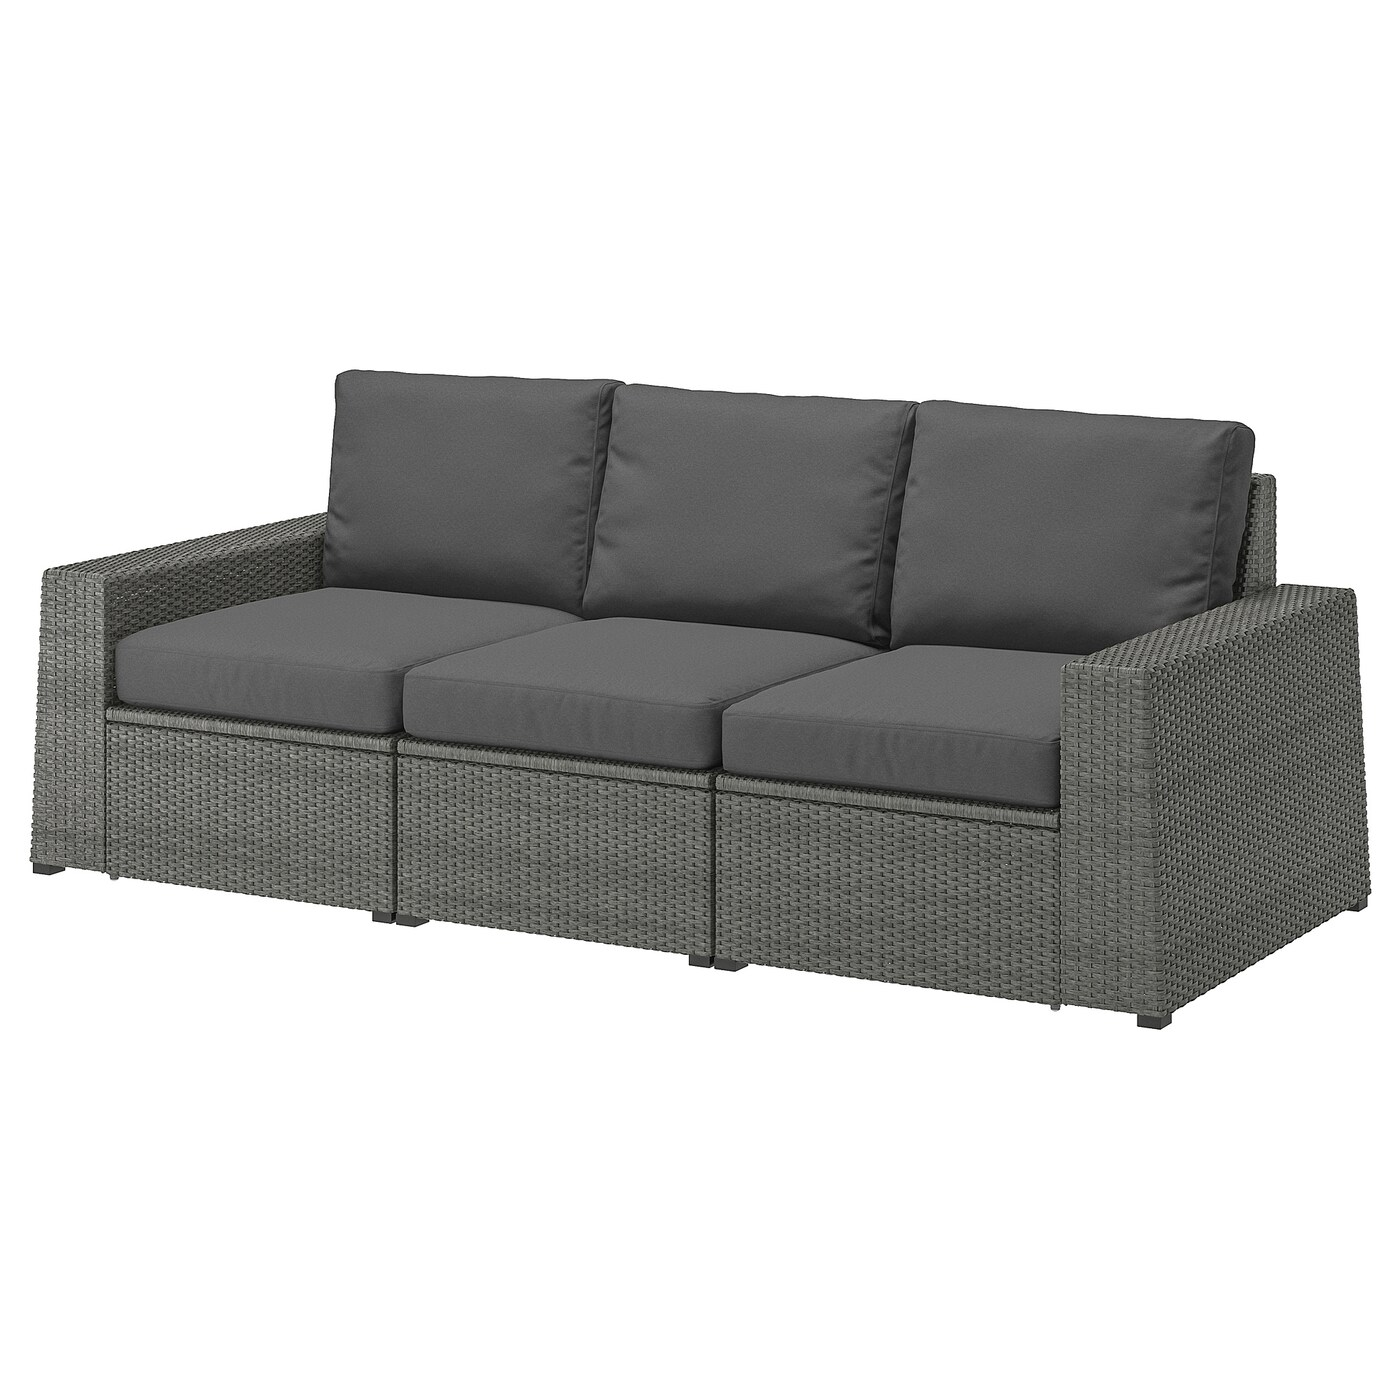 Garden Furniture Corner Sofa Ebay Ikea Outdoor Sofas Ireland Dublin